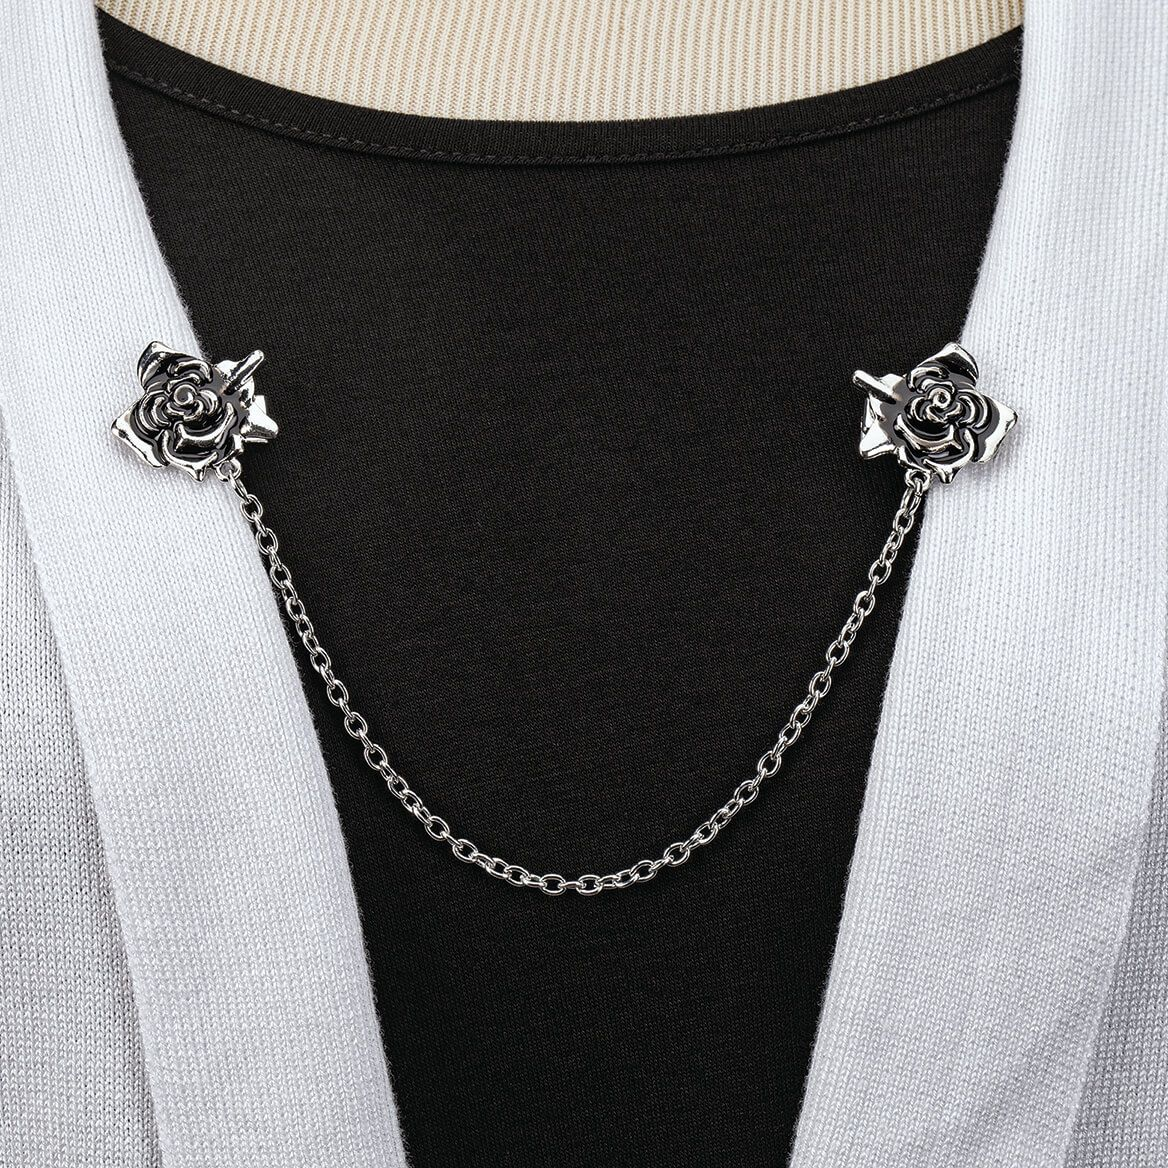 Vintage Rose Dual Chain Clips-371349